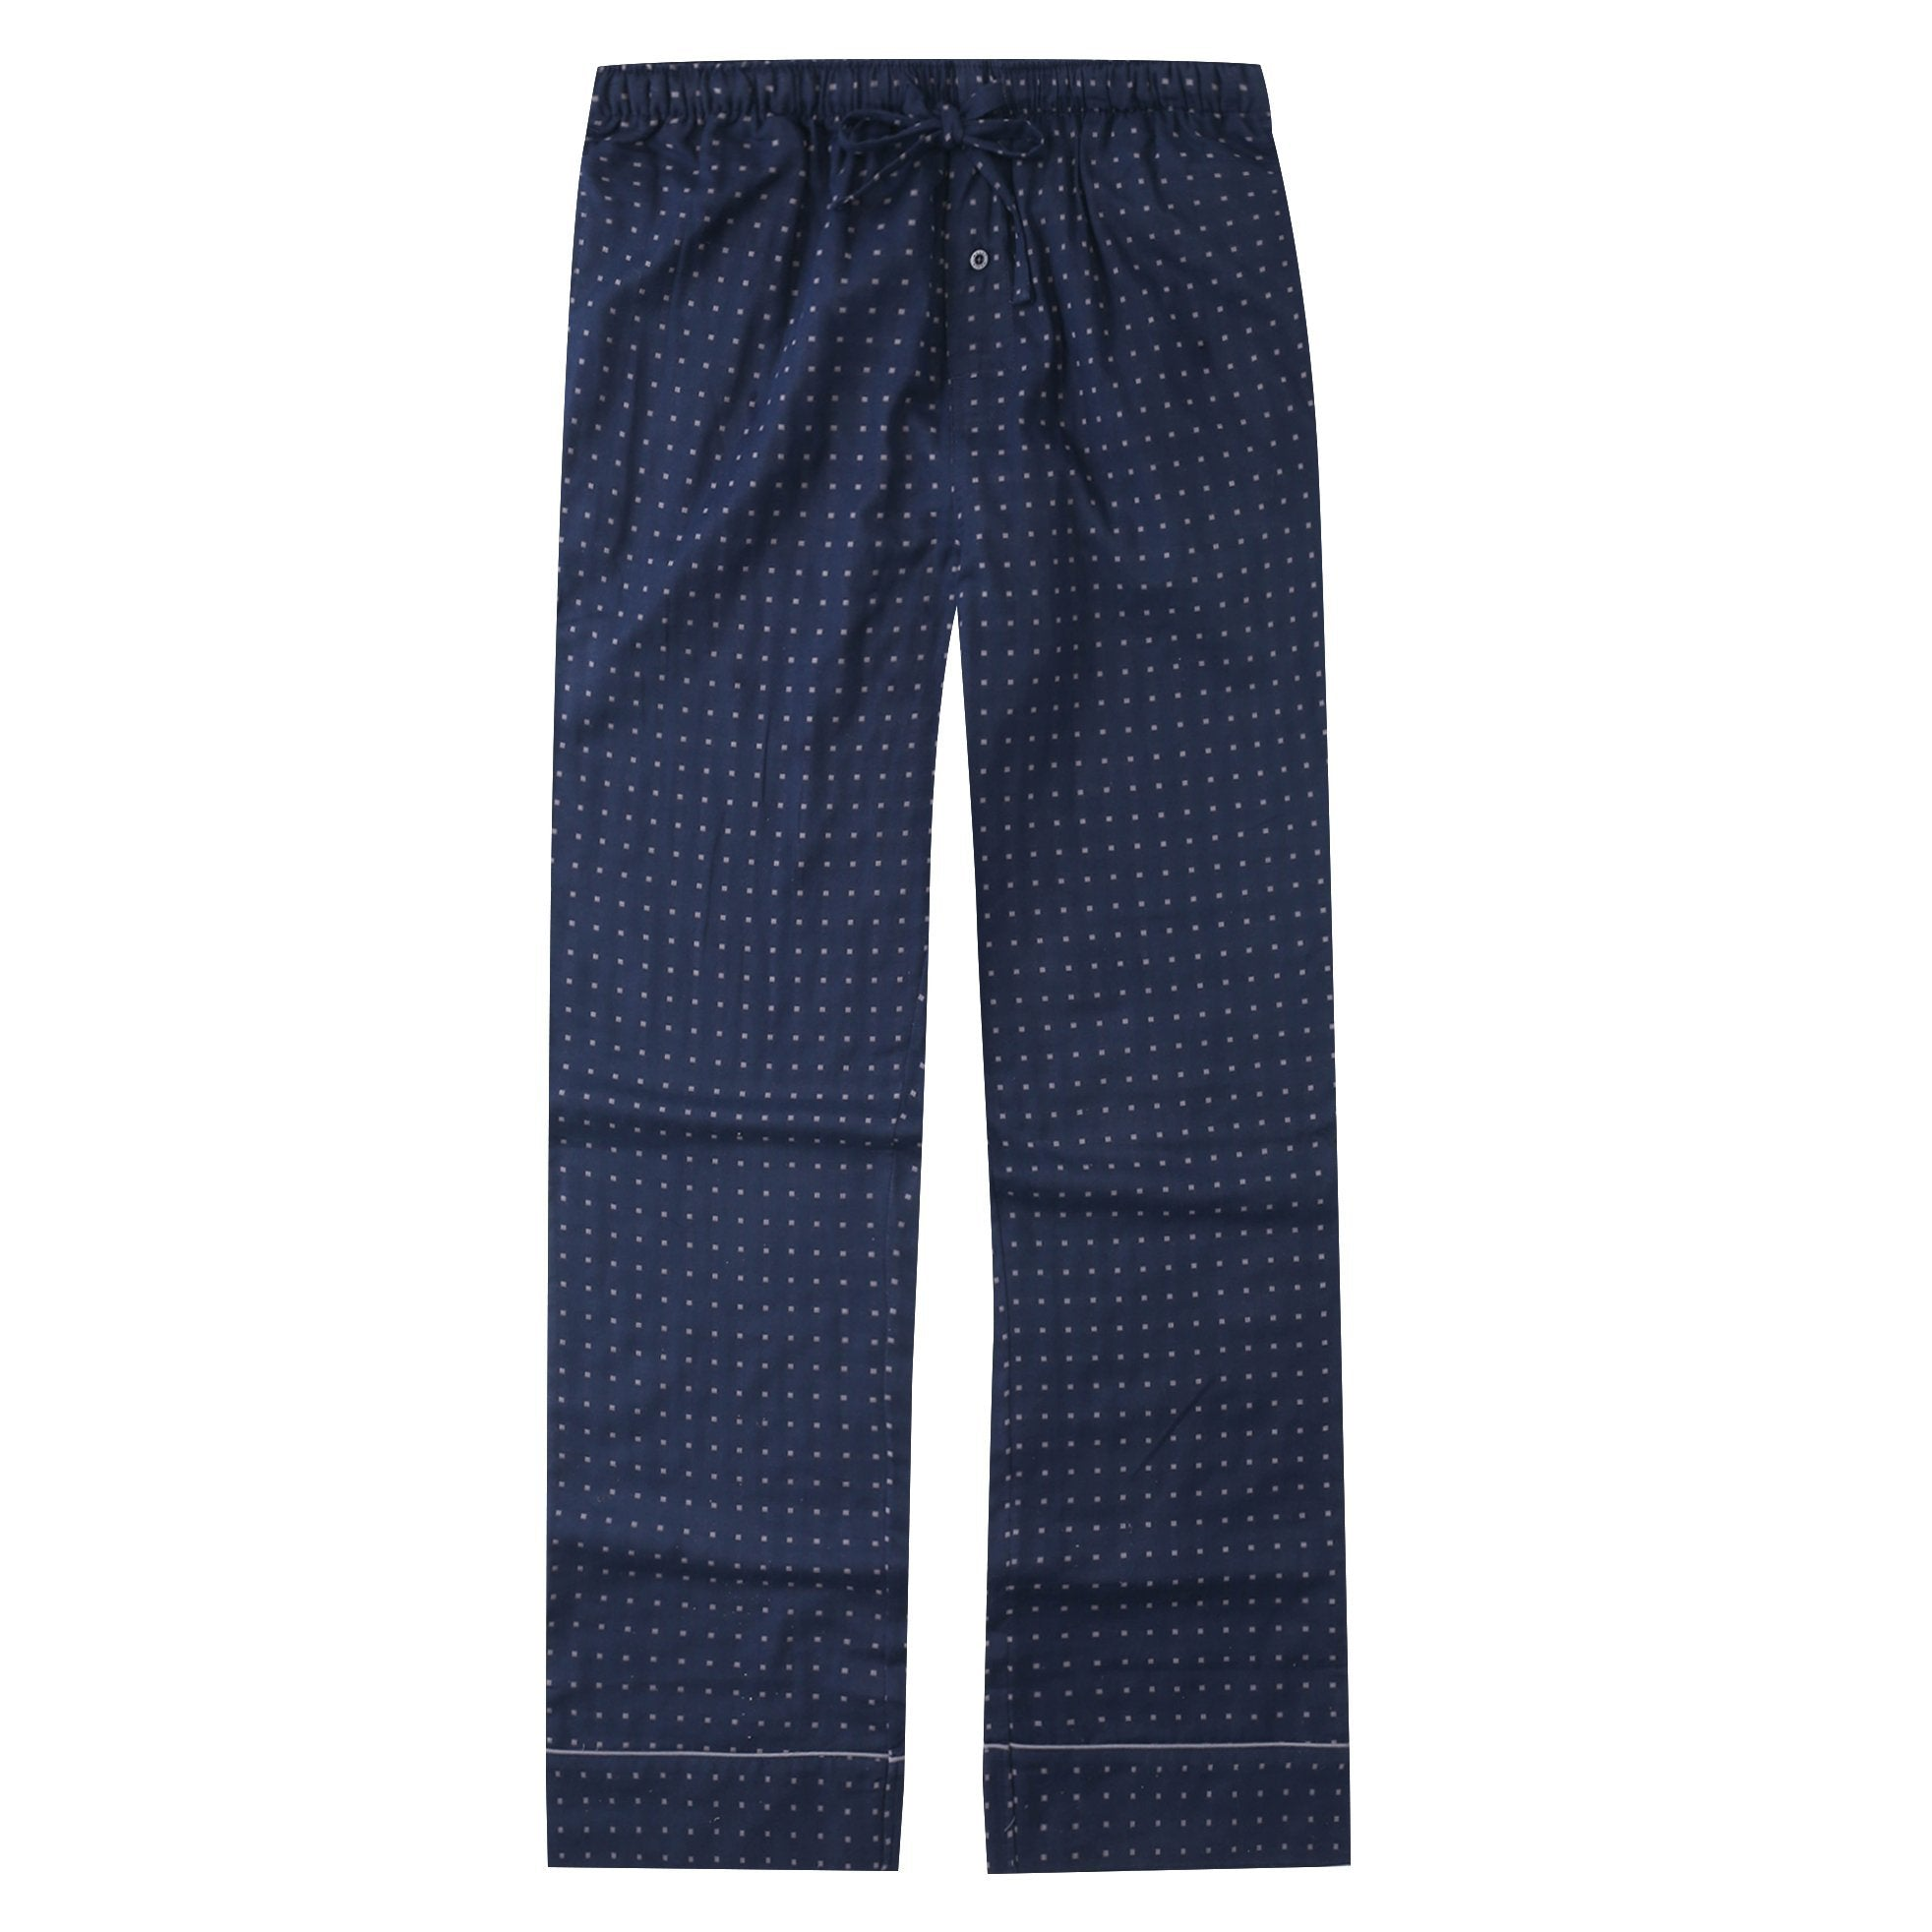 Mens Cotton Woven Double Layer Soft Lounge Pant